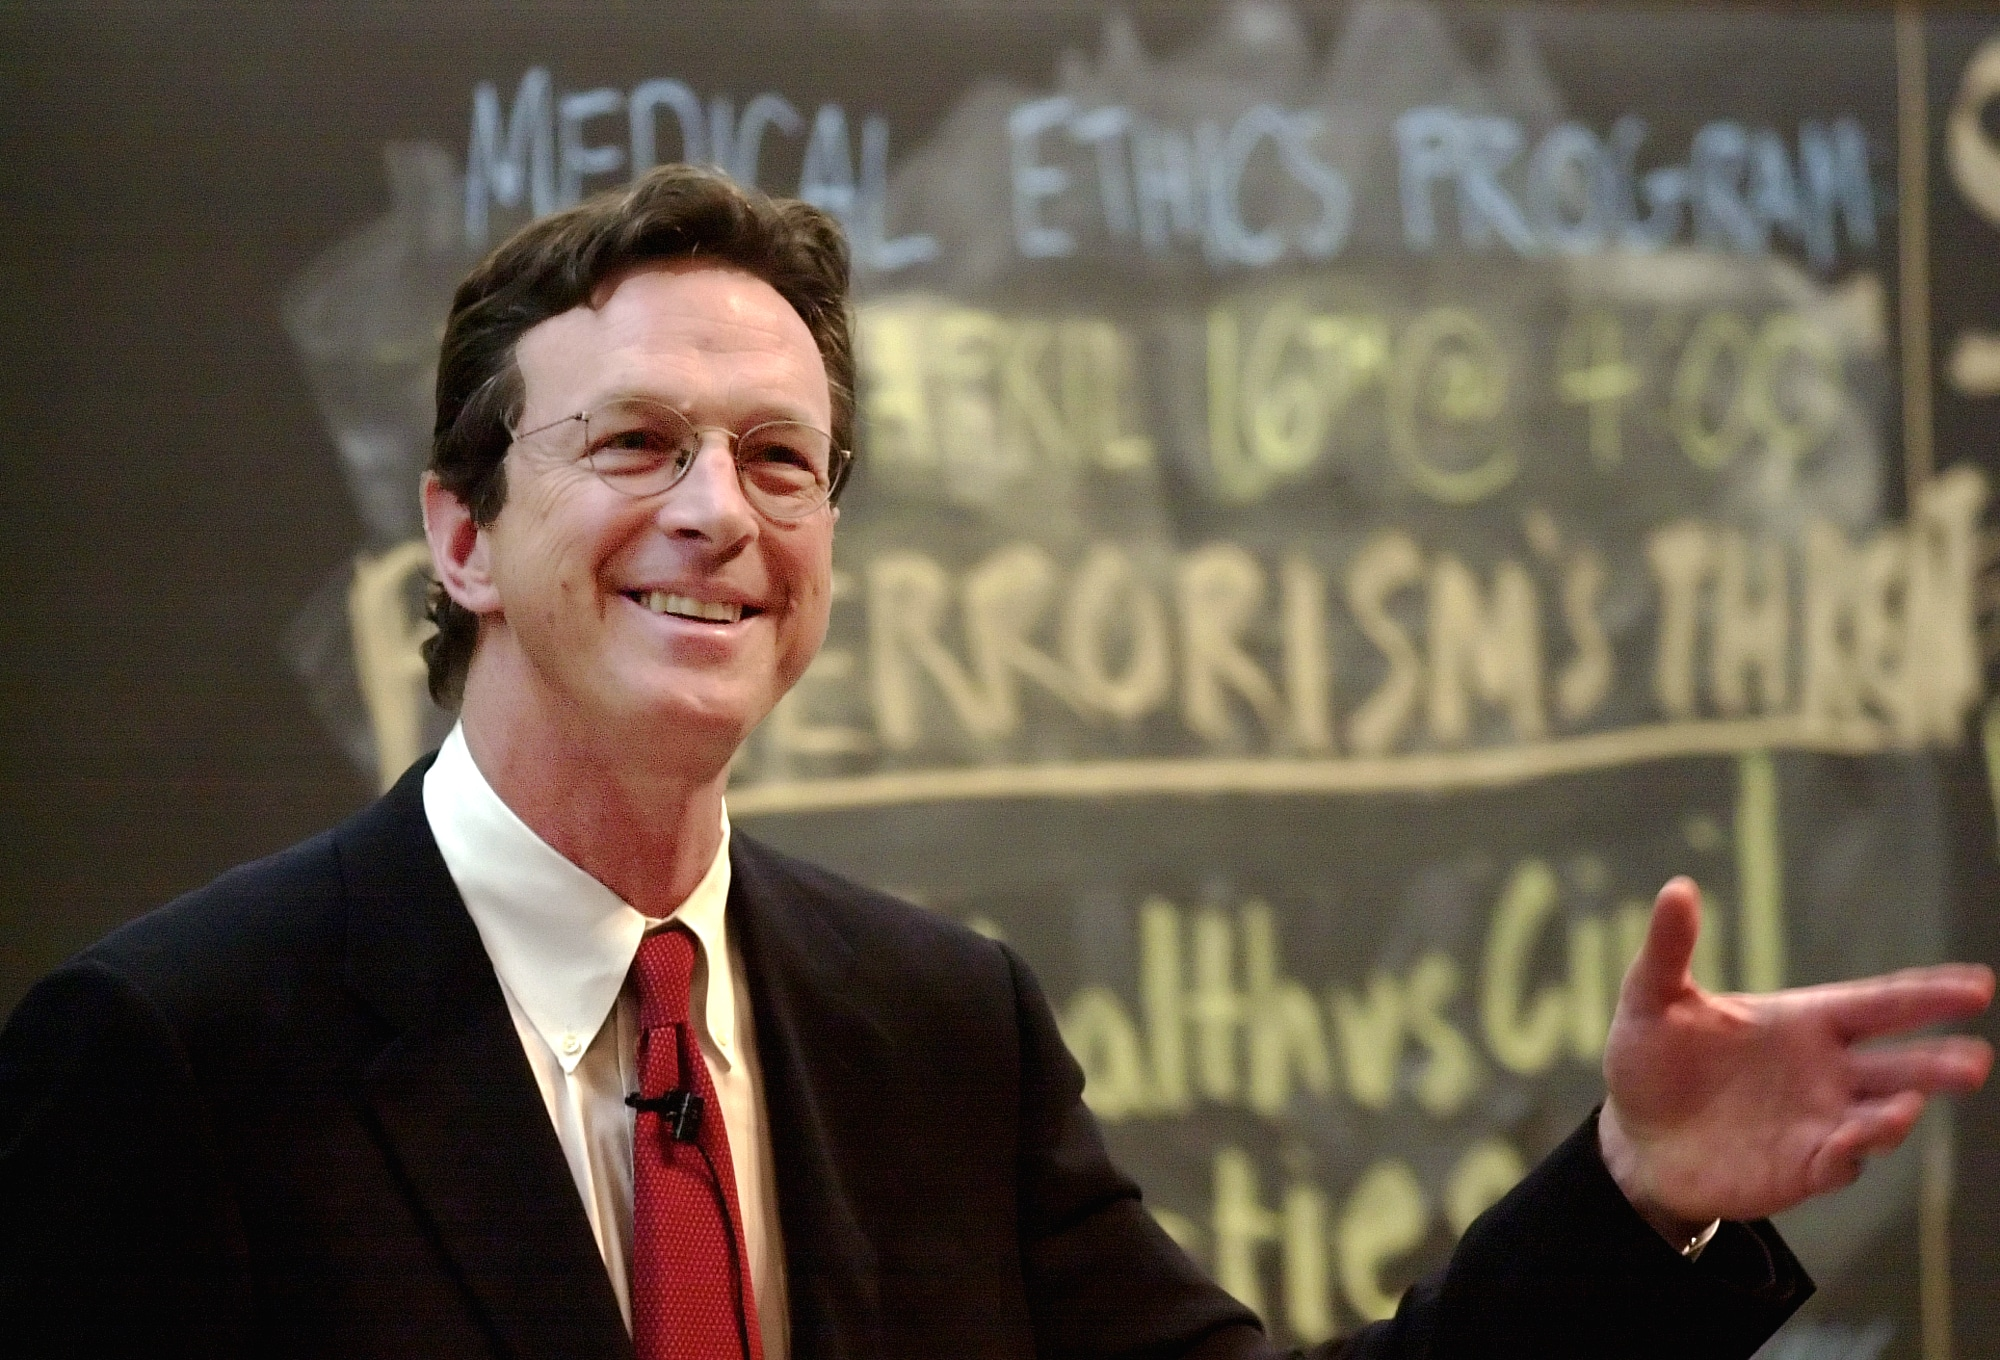 michael crichton Using true stories of famous fortune fights, author and michigan probate attorneys andrew mayoras and danielle mayoras teach to protect families & preserve legacies.